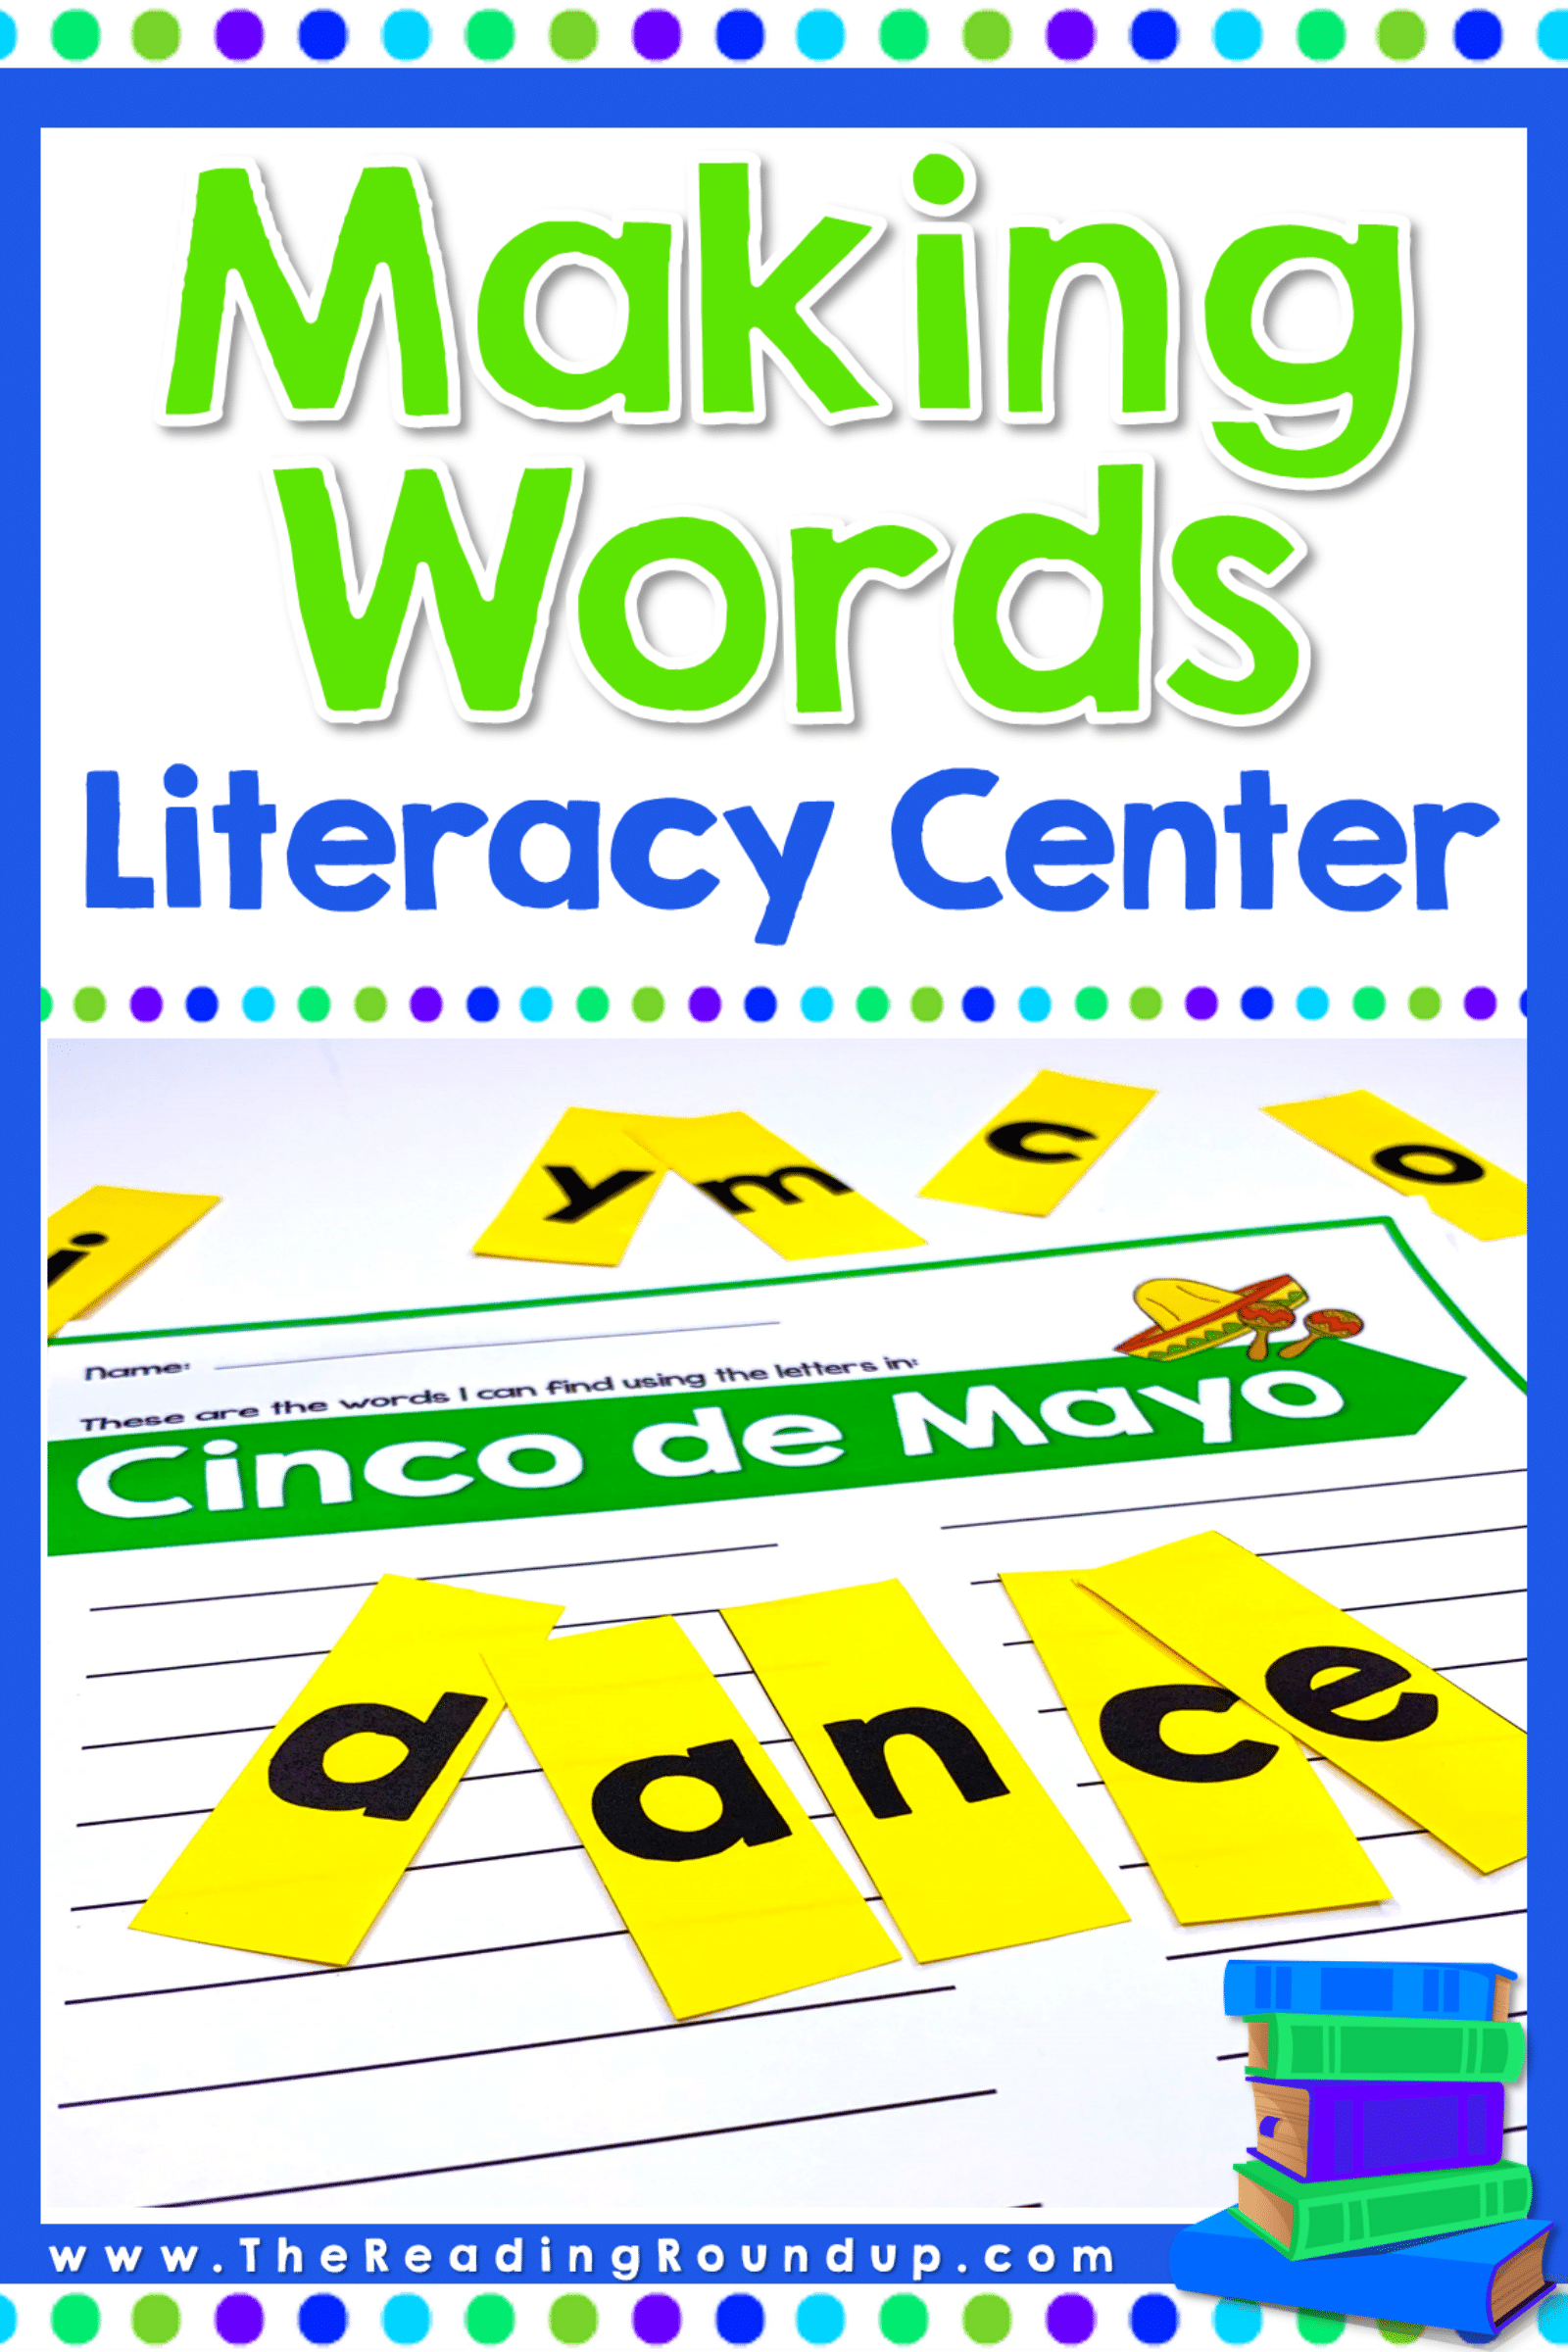 Do You Need An Easy Phonics Literacy Center That You Can Use All Year Long In The Making Words Activity Making Words Activities Word Work Fun Literacy Centers